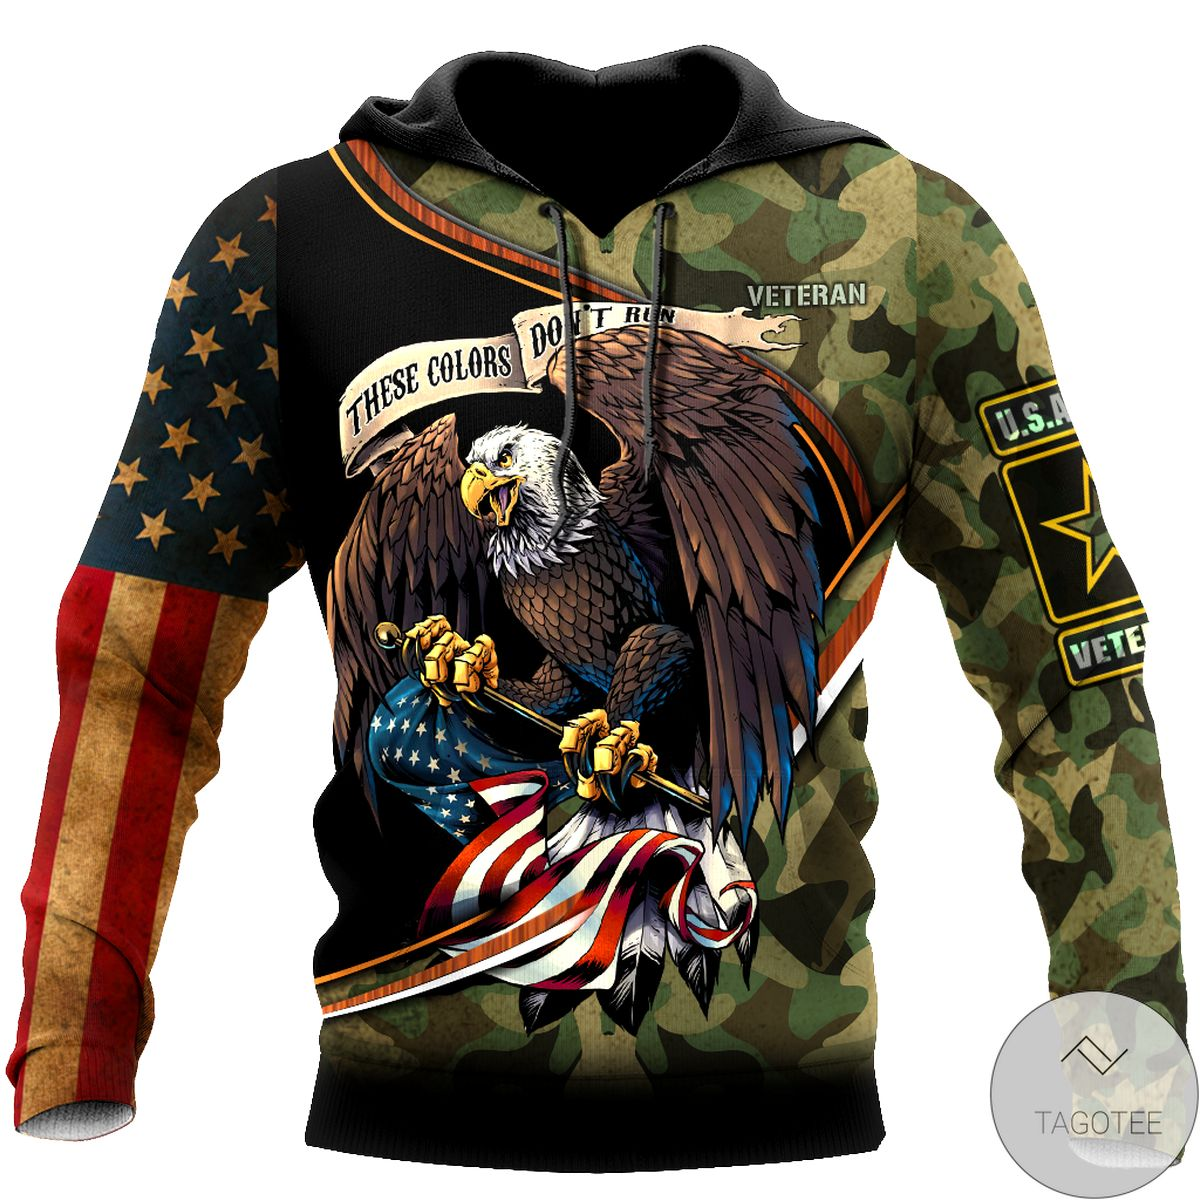 All Over Print Us Veteran Camo These Color Don't Run 3D All Over Print Hoodie